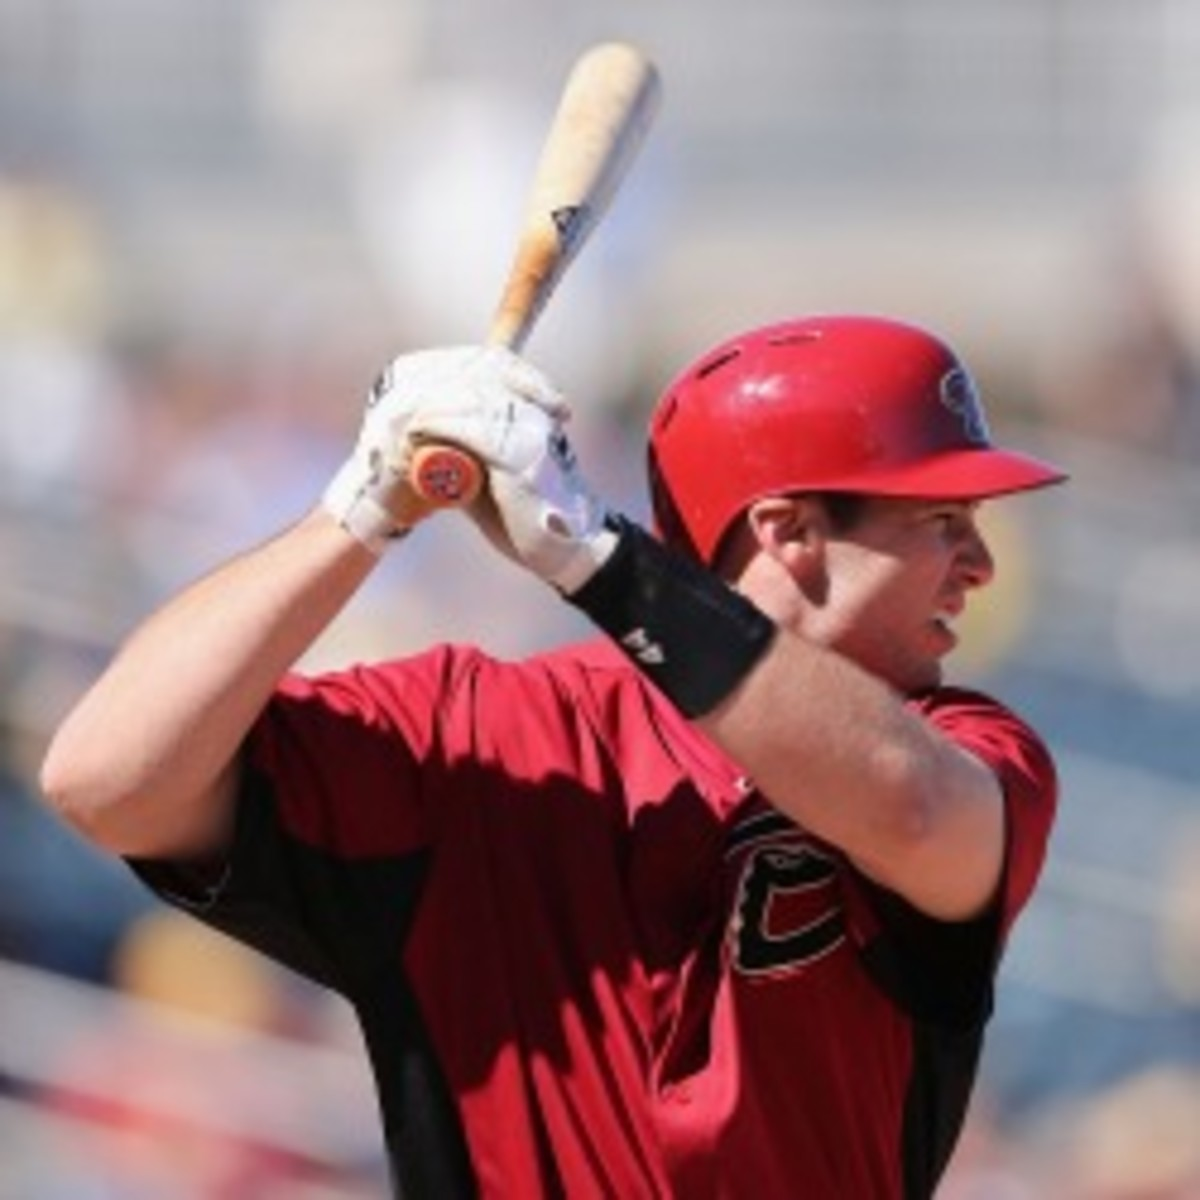 The Diamondbacks locked up their first baseman Paul Goldschmidt, signing him to a five-year deal. (Christian Petersen/Getty Images)